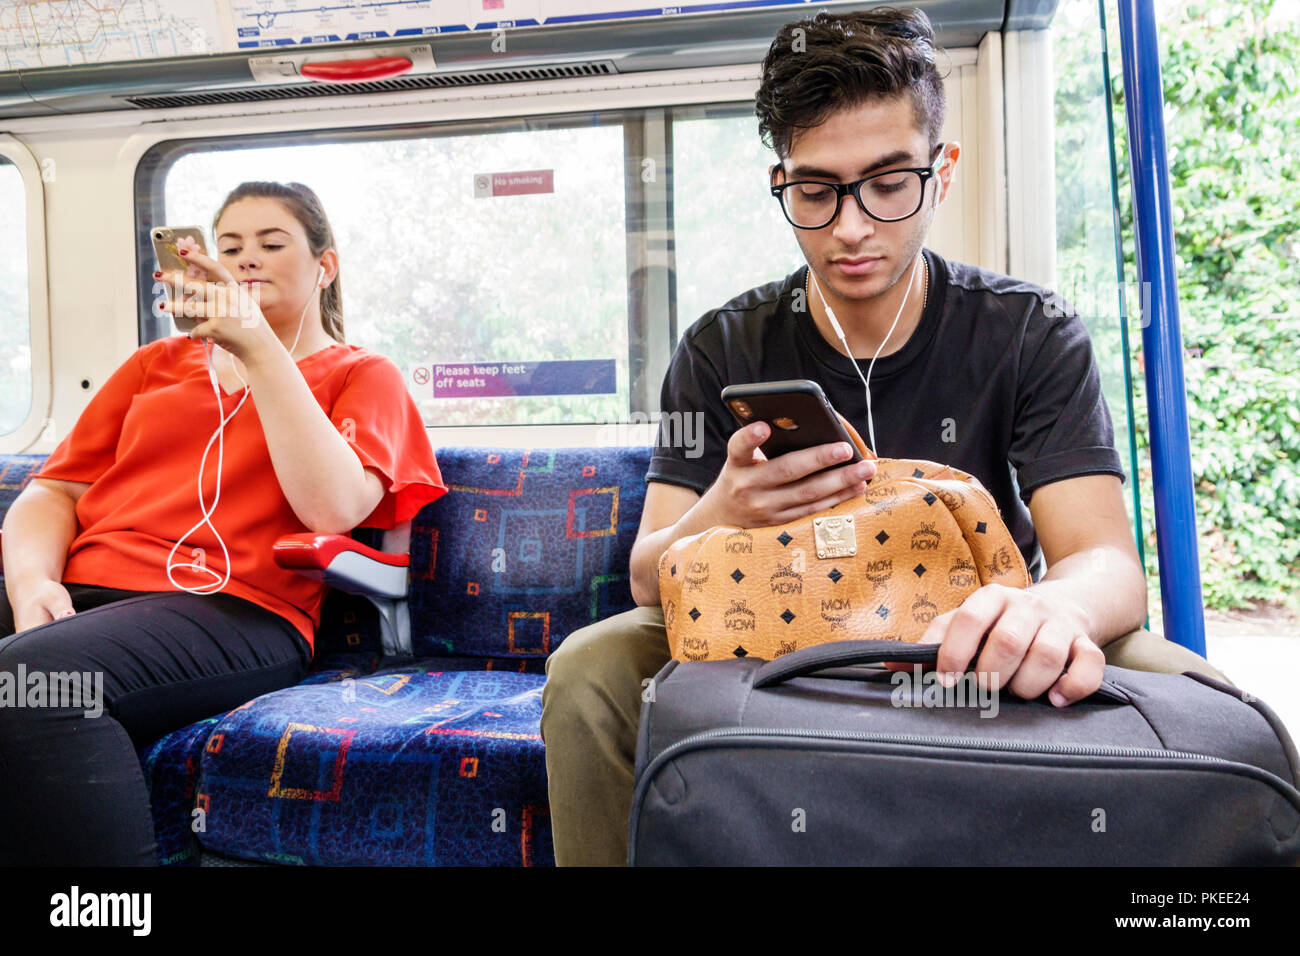 London England Great Britain United Kingdom Underground Tube public transportation system rapid transit Picadilly Circus Line train inside man woman s - Stock Image